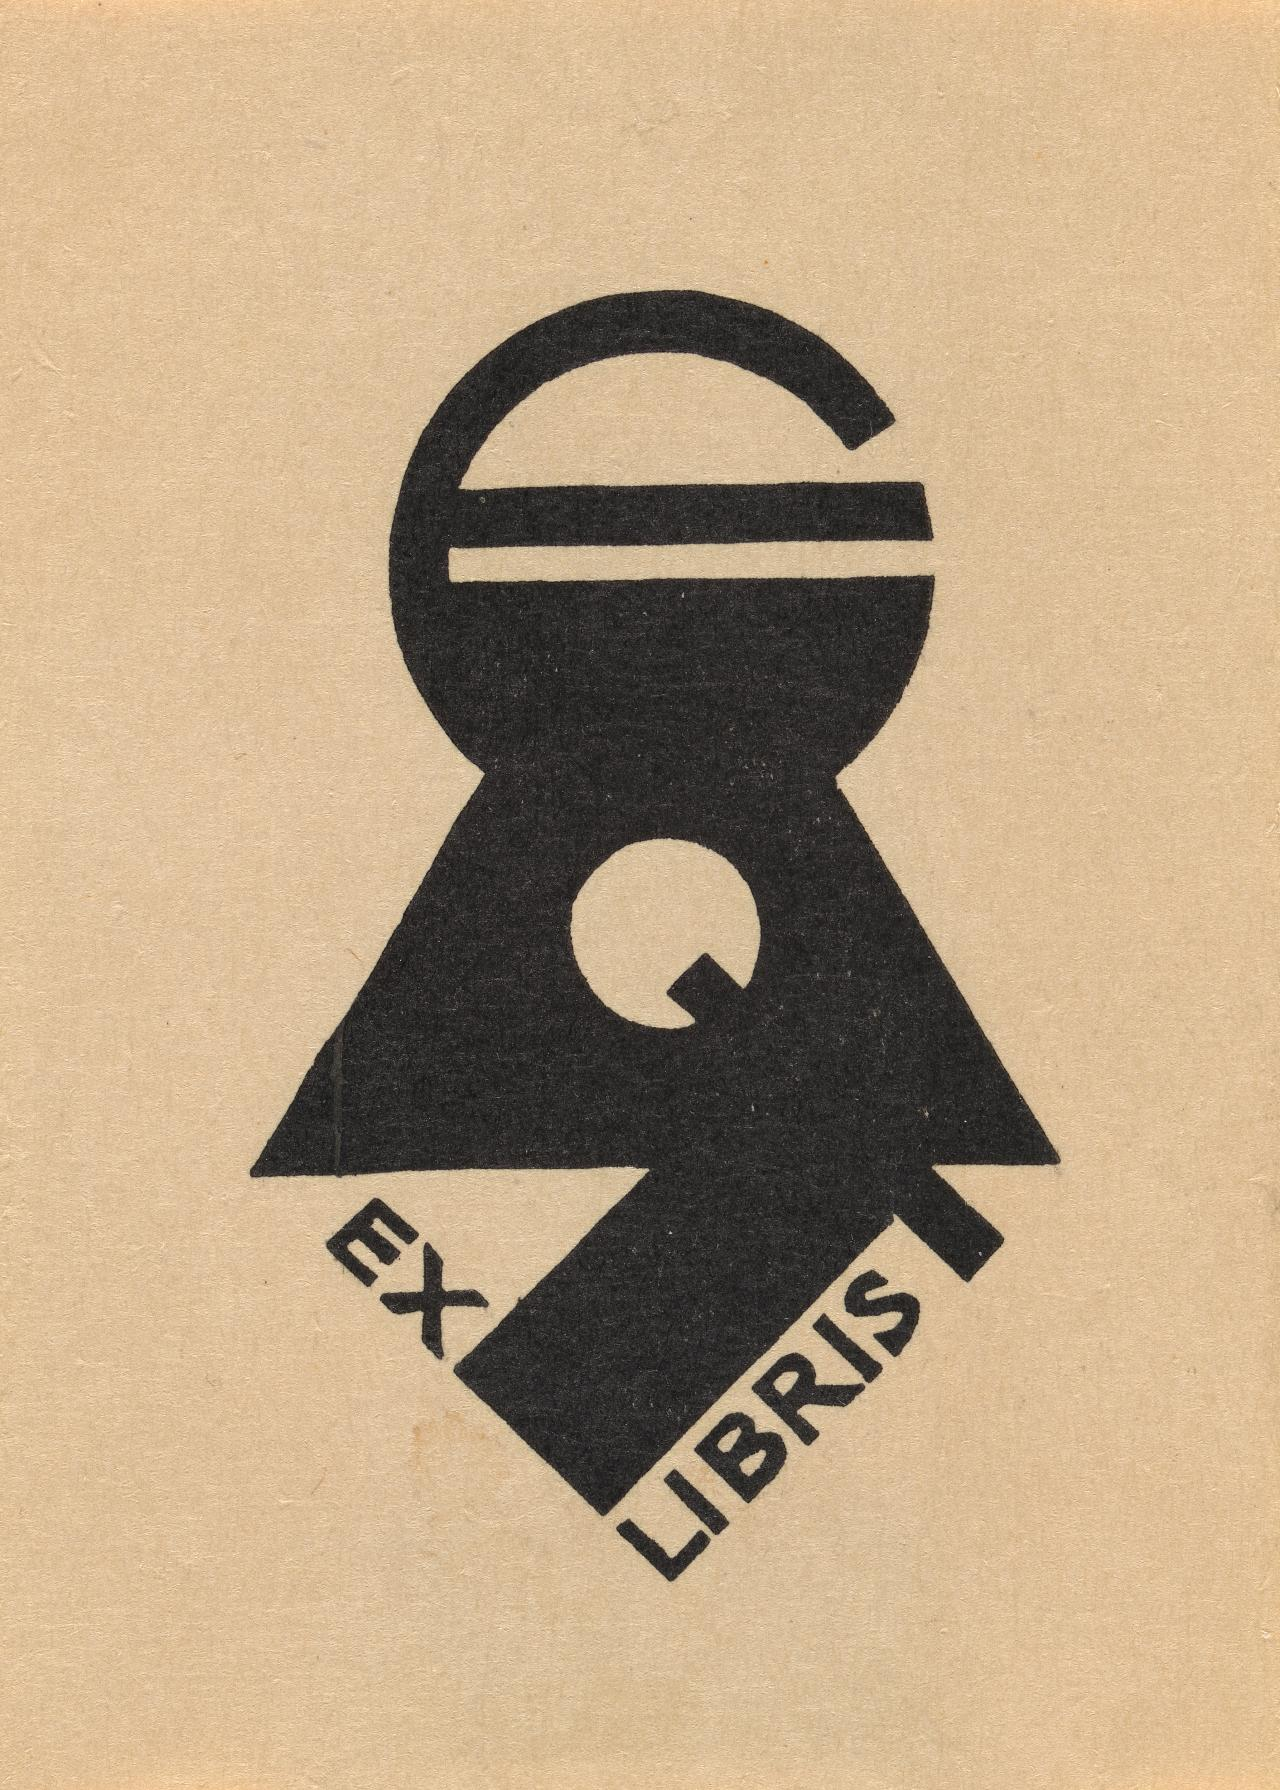 Bookplate: Eric Thake (Initials E.A.T. forming padlock design)